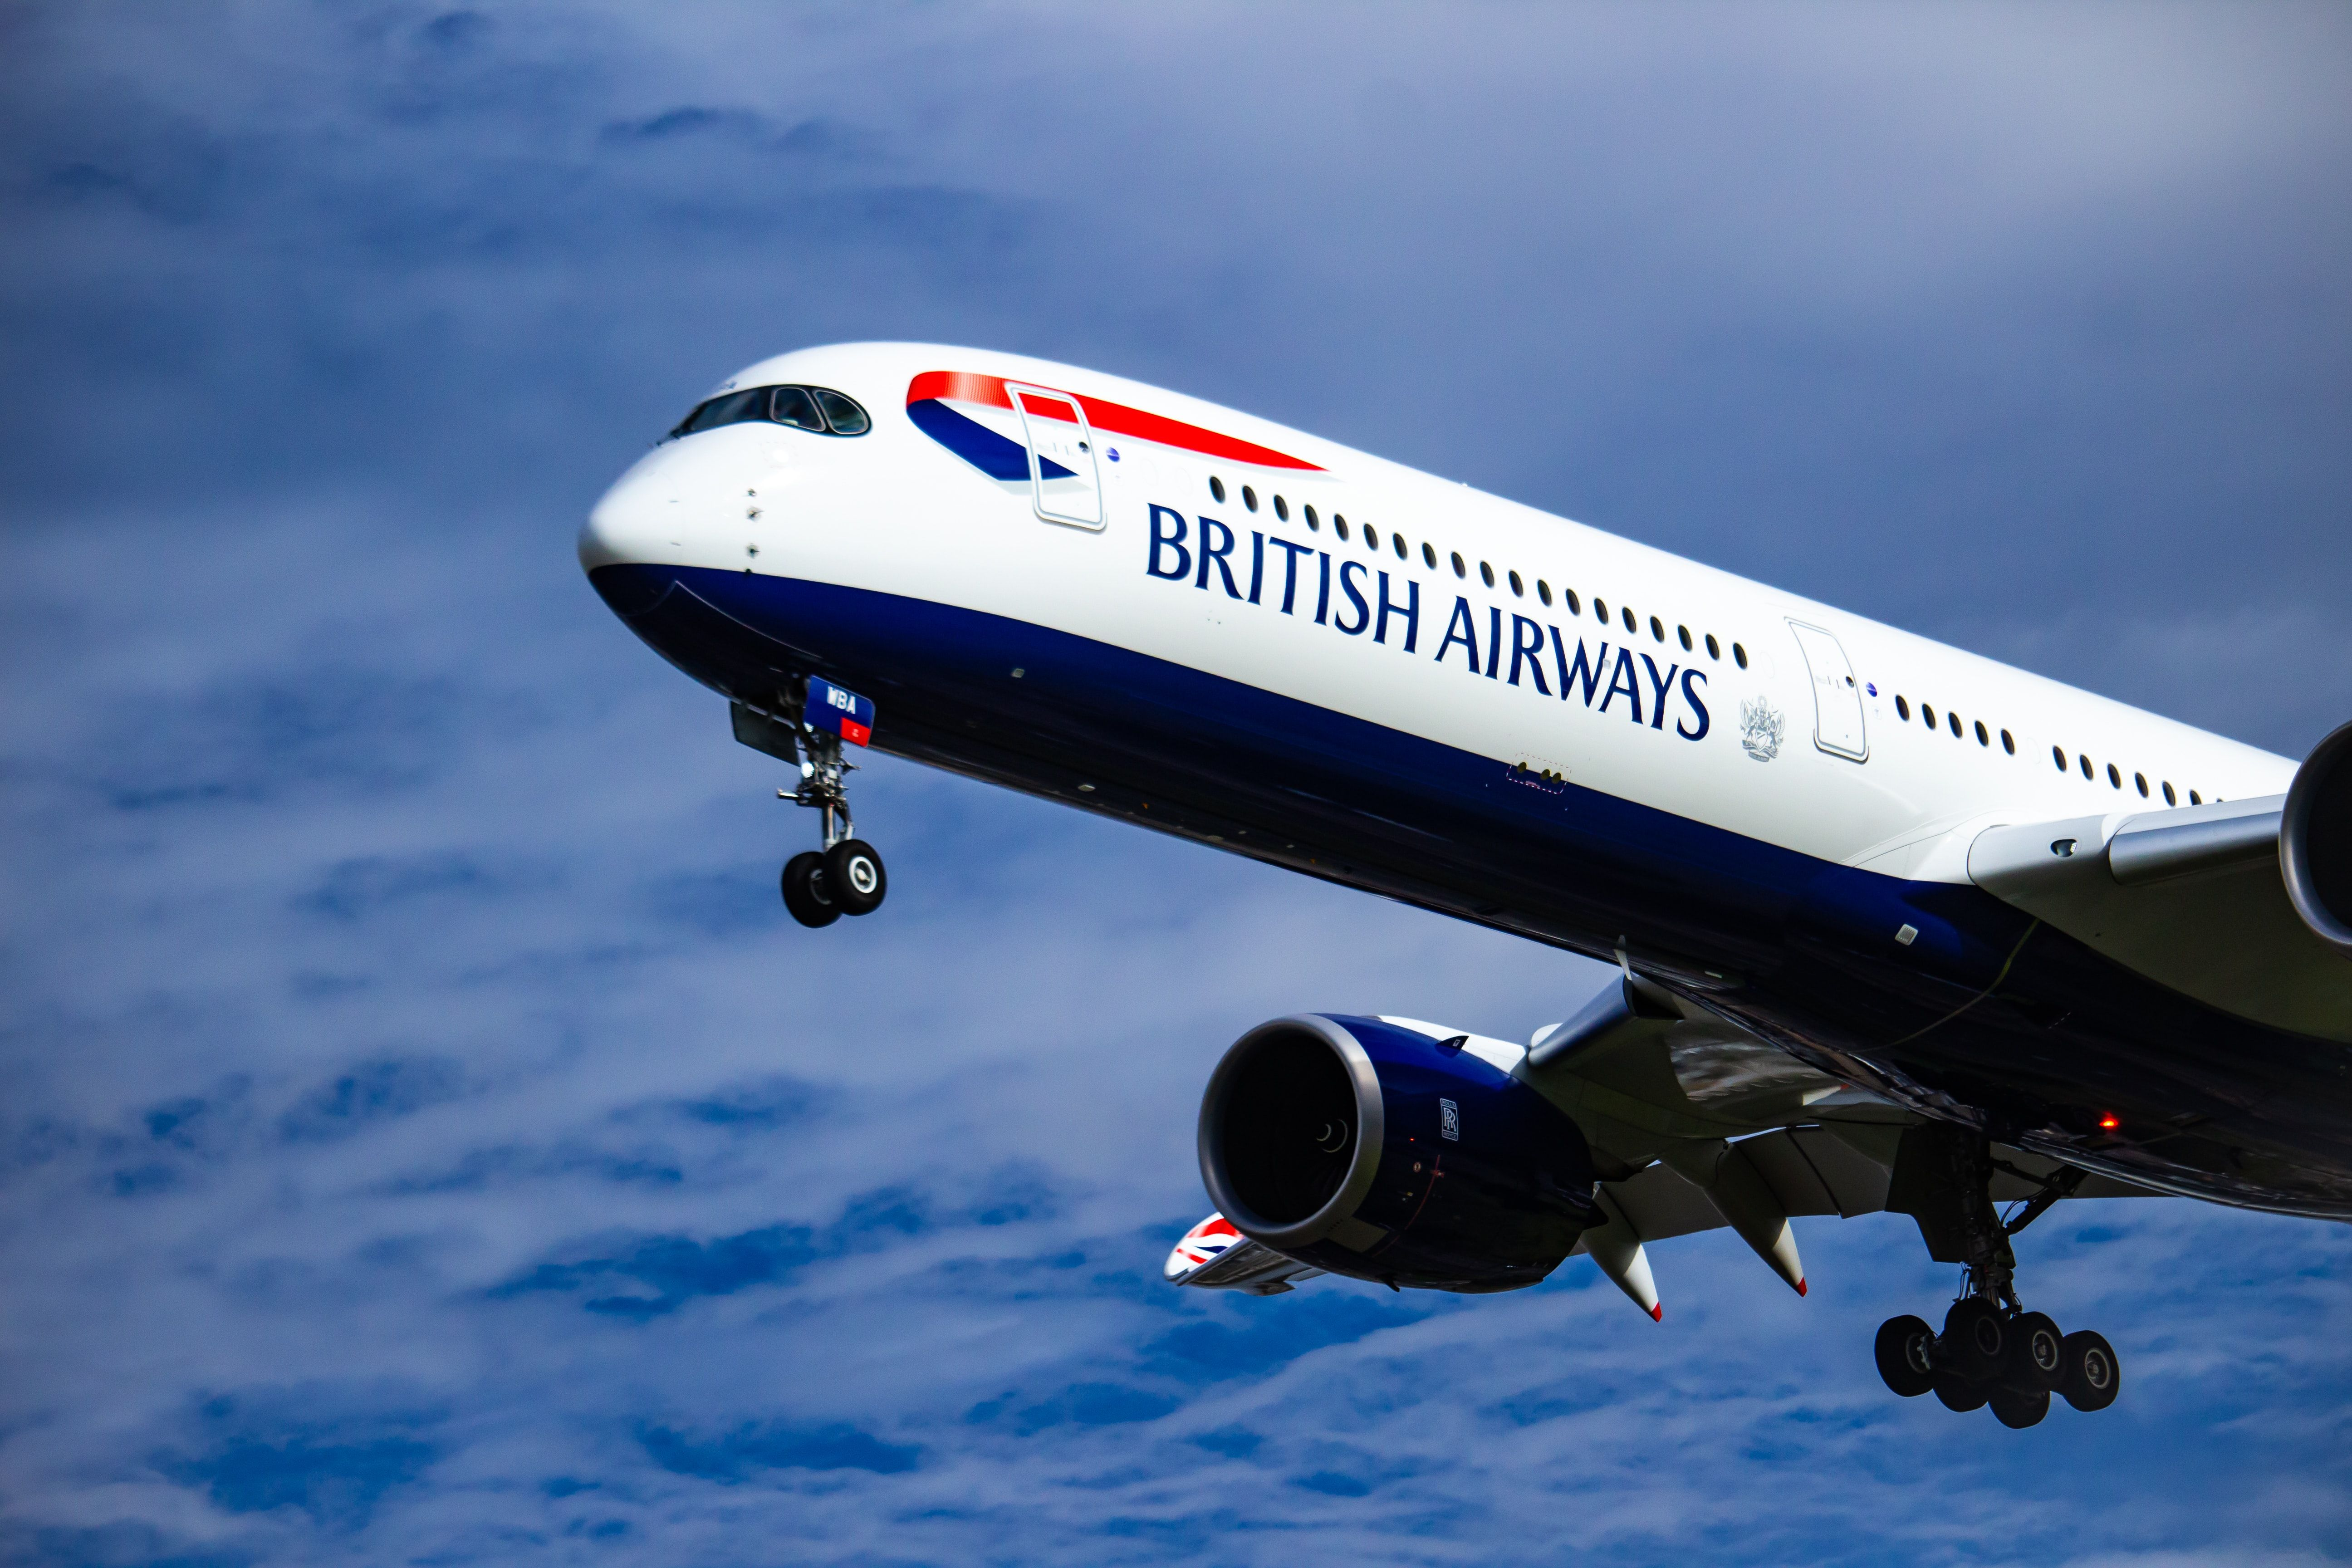 eSky Group and British Airways strengthen their cooperation